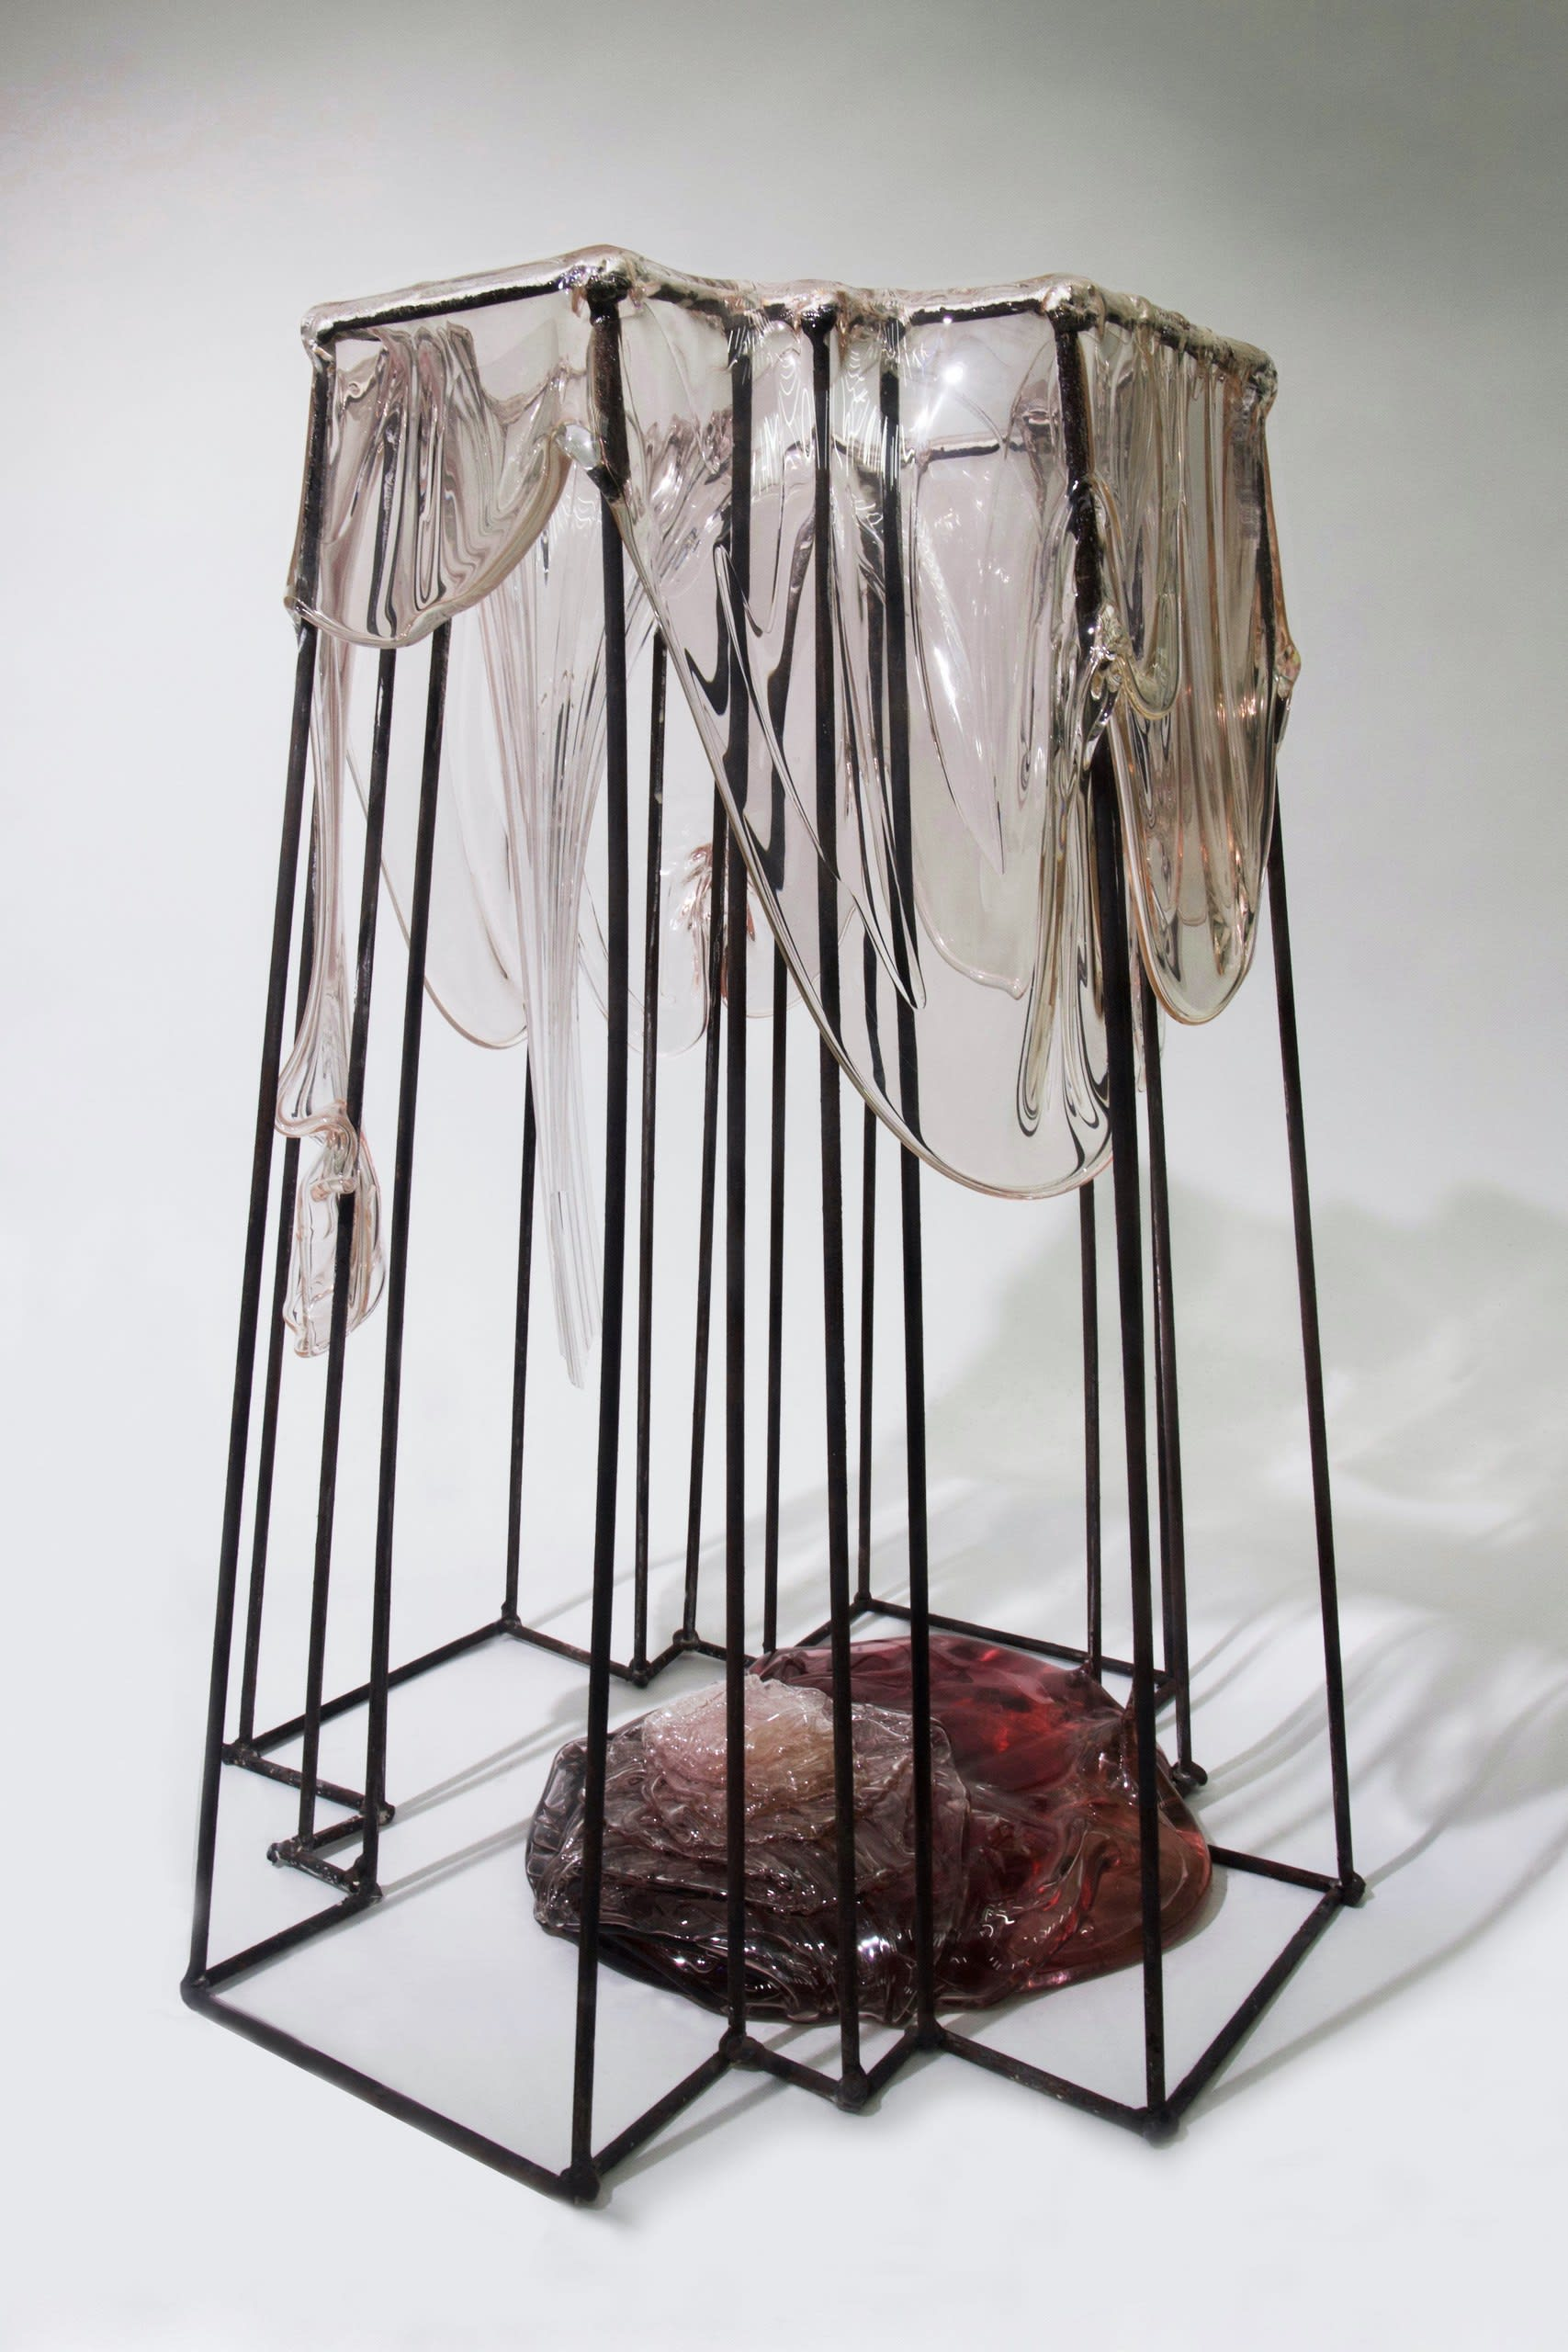 'Cross-examination' — Kiln-formed glass and welded steel rod — 100 x 35 x 35 cm